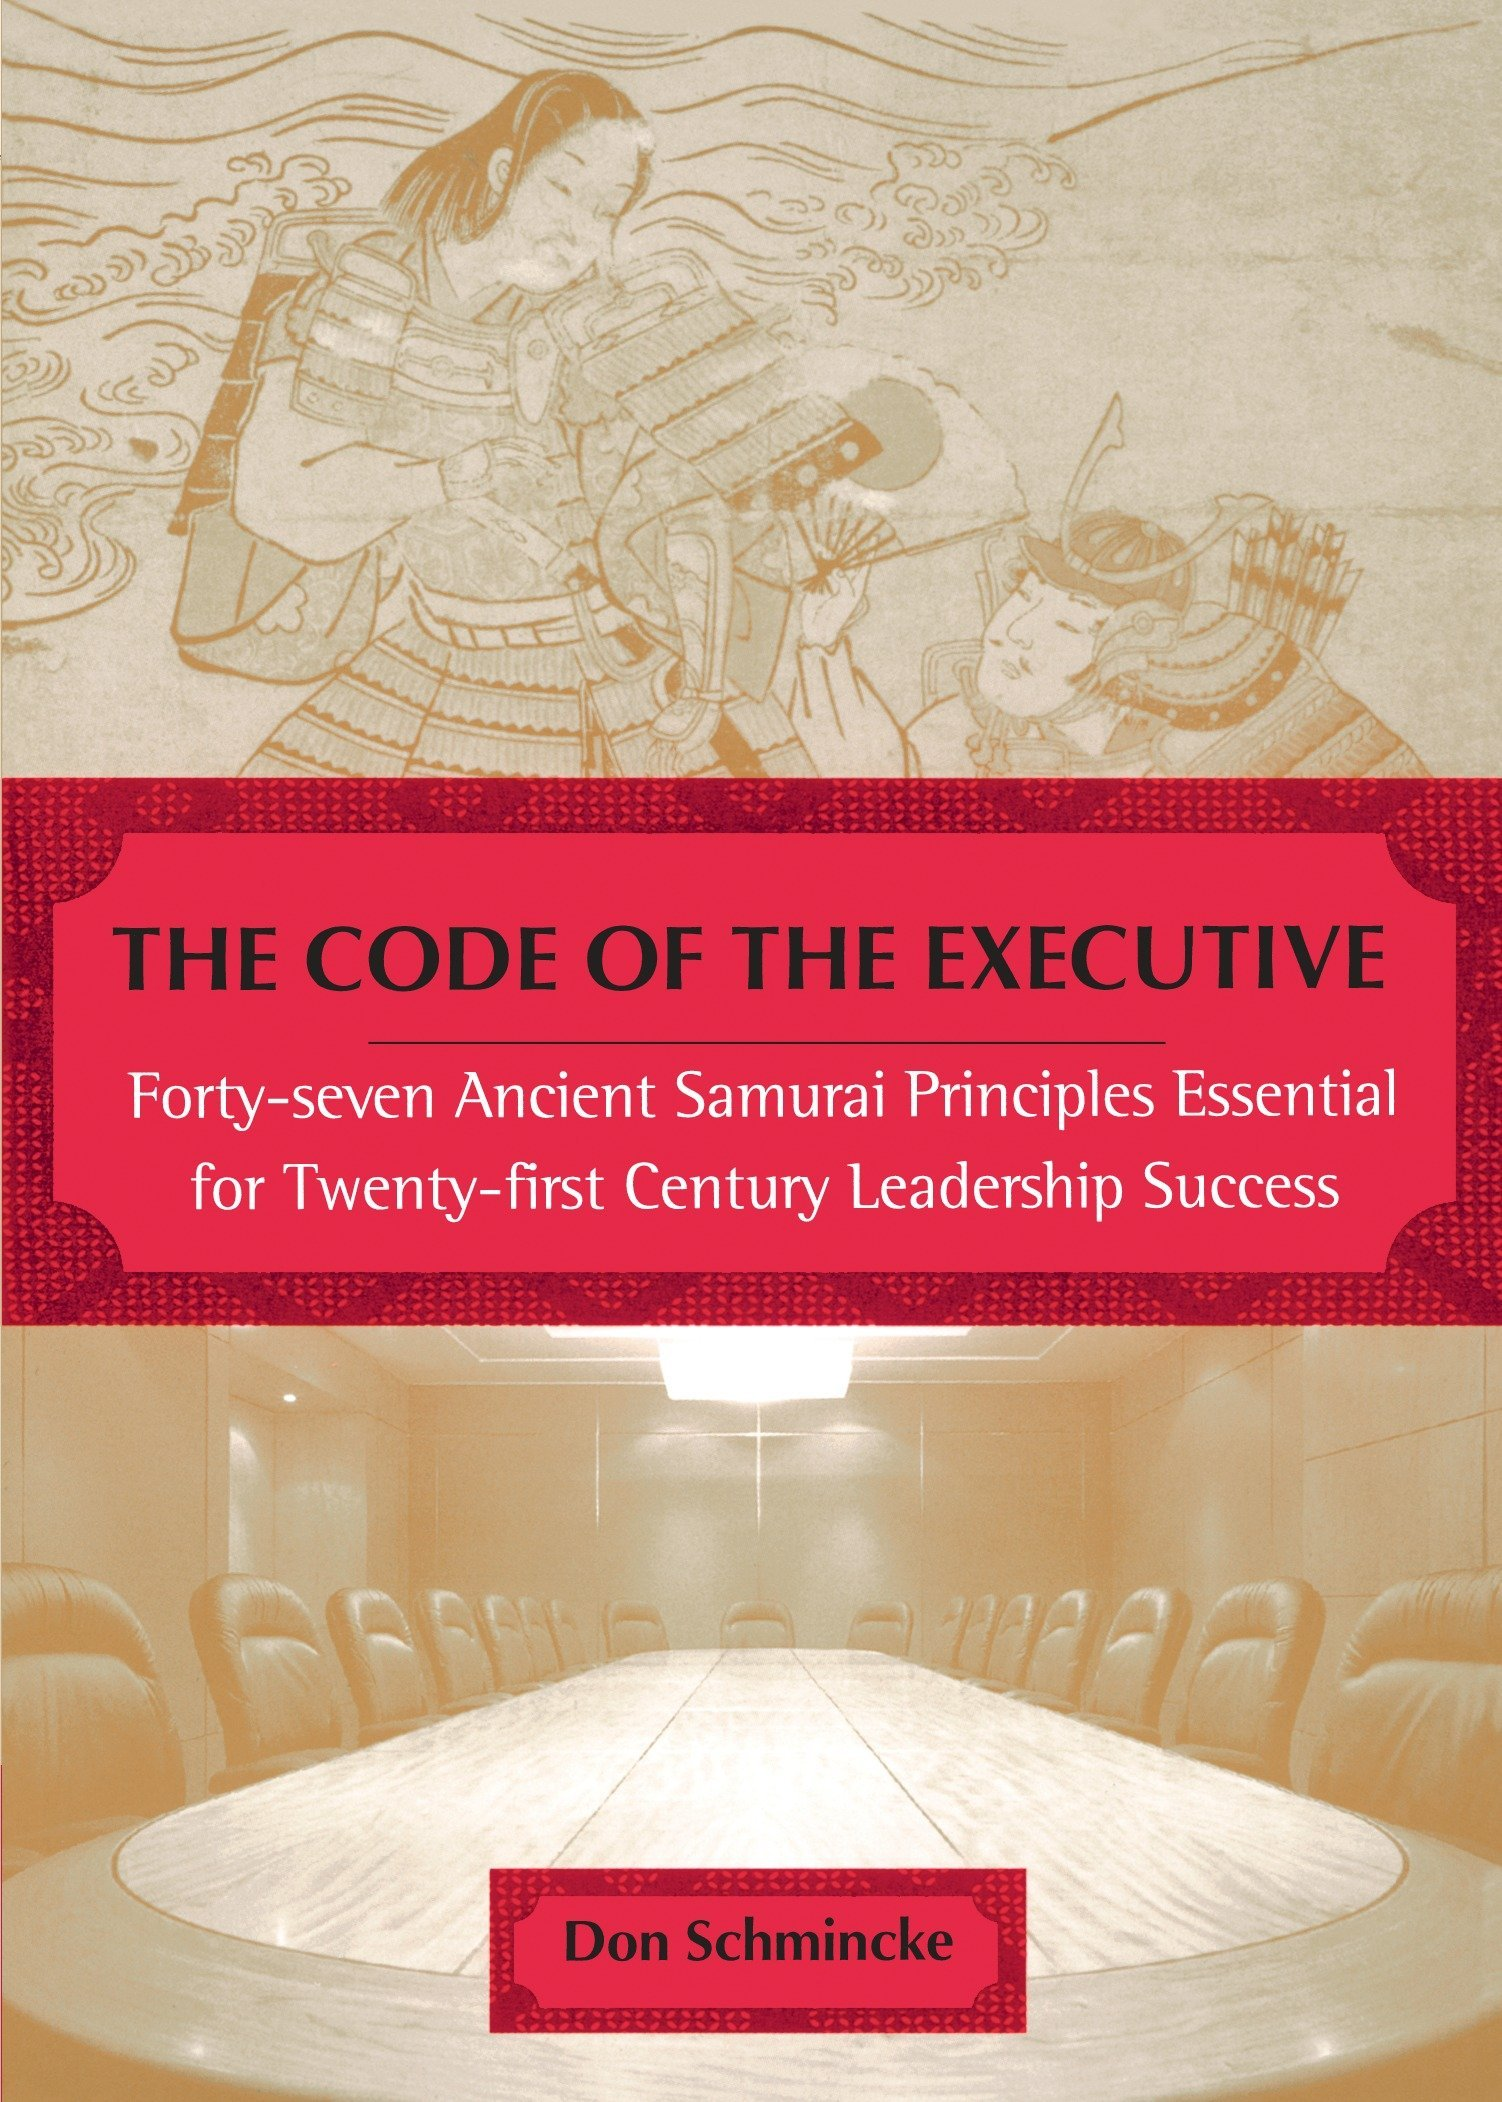 Download The Code of the Executive: Forty-Seven Ancient Samurai Principles Essential for Twenty-First Century Leadership Success pdf